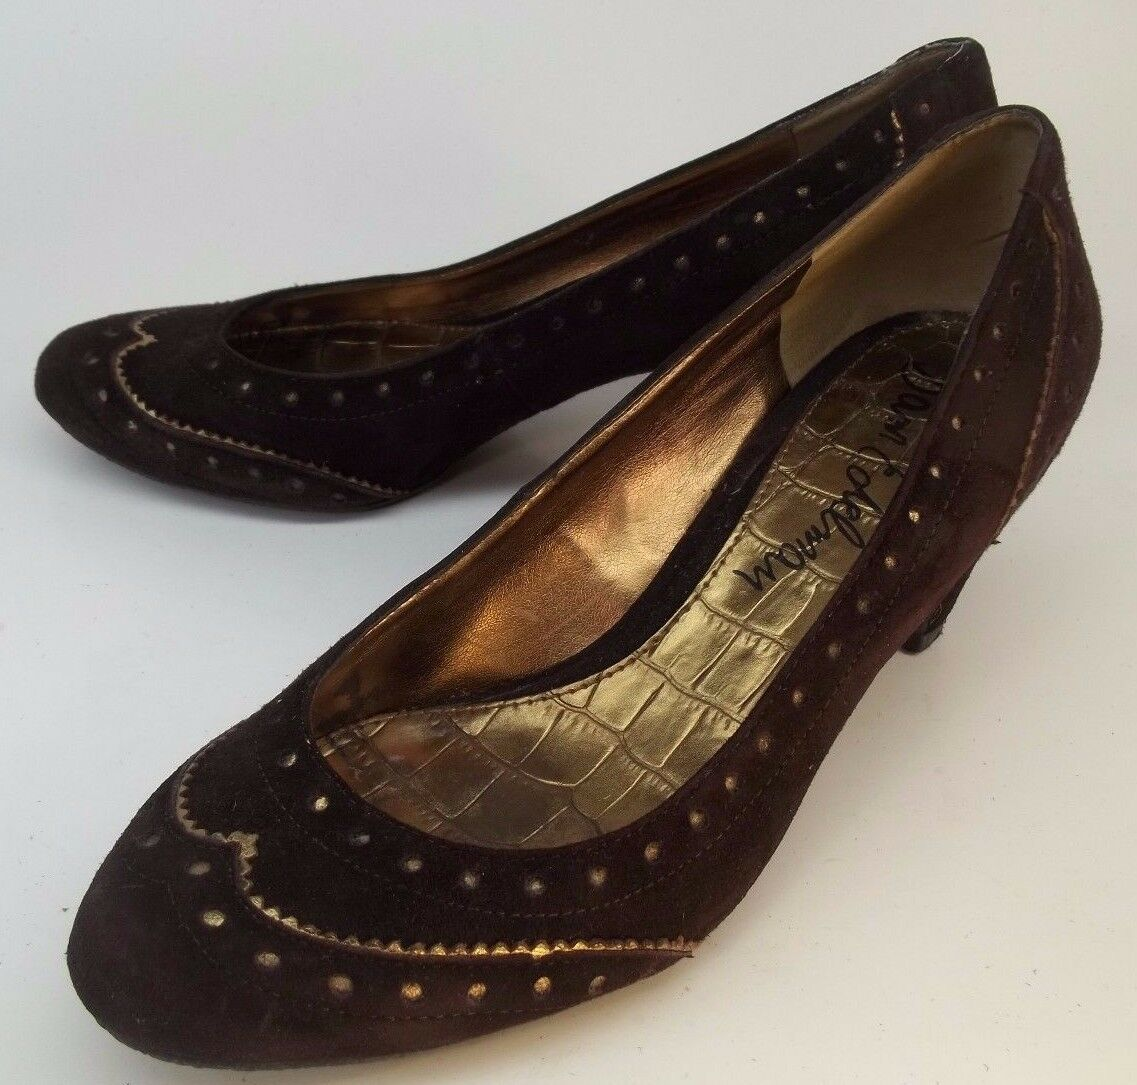 Sam Edelman Wos Shoes Pumps Heels YVONNE US 6M Brown Gold Trim Suede Slip-on